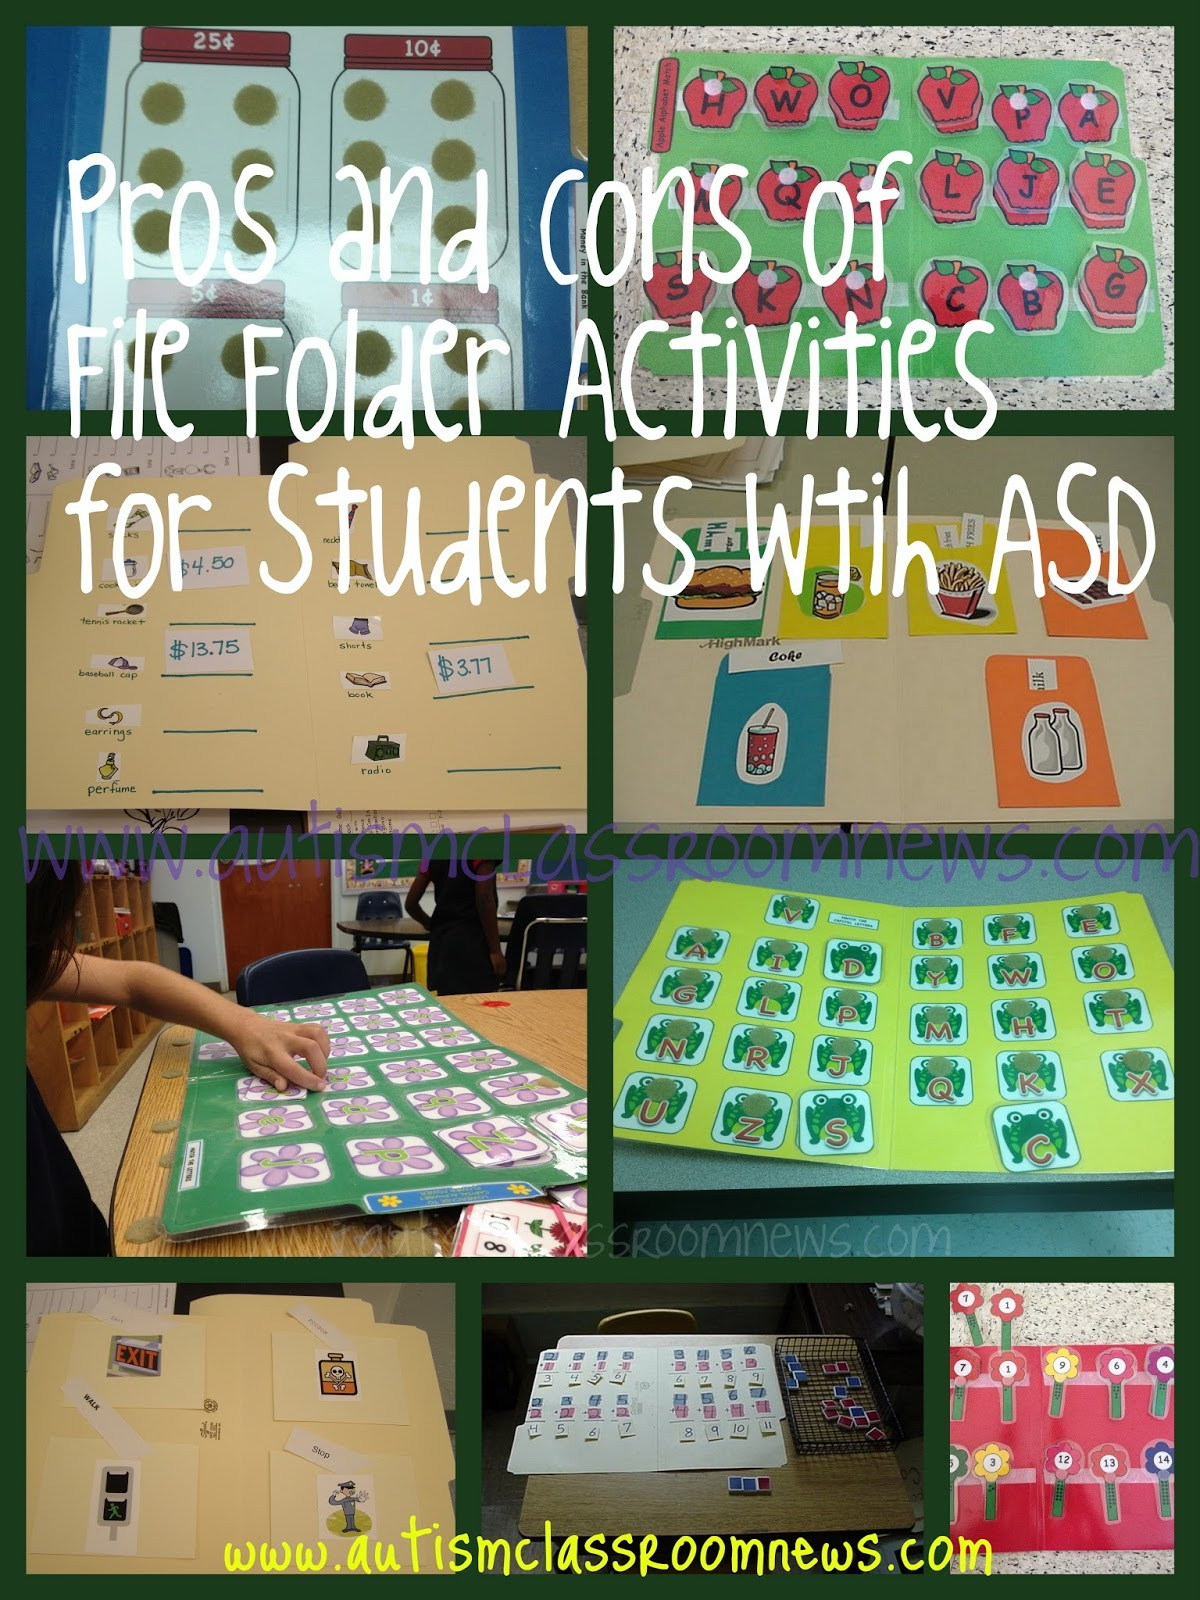 Classroom Ideas For Autistic Students ~ The pros and cons of file folder activities for students